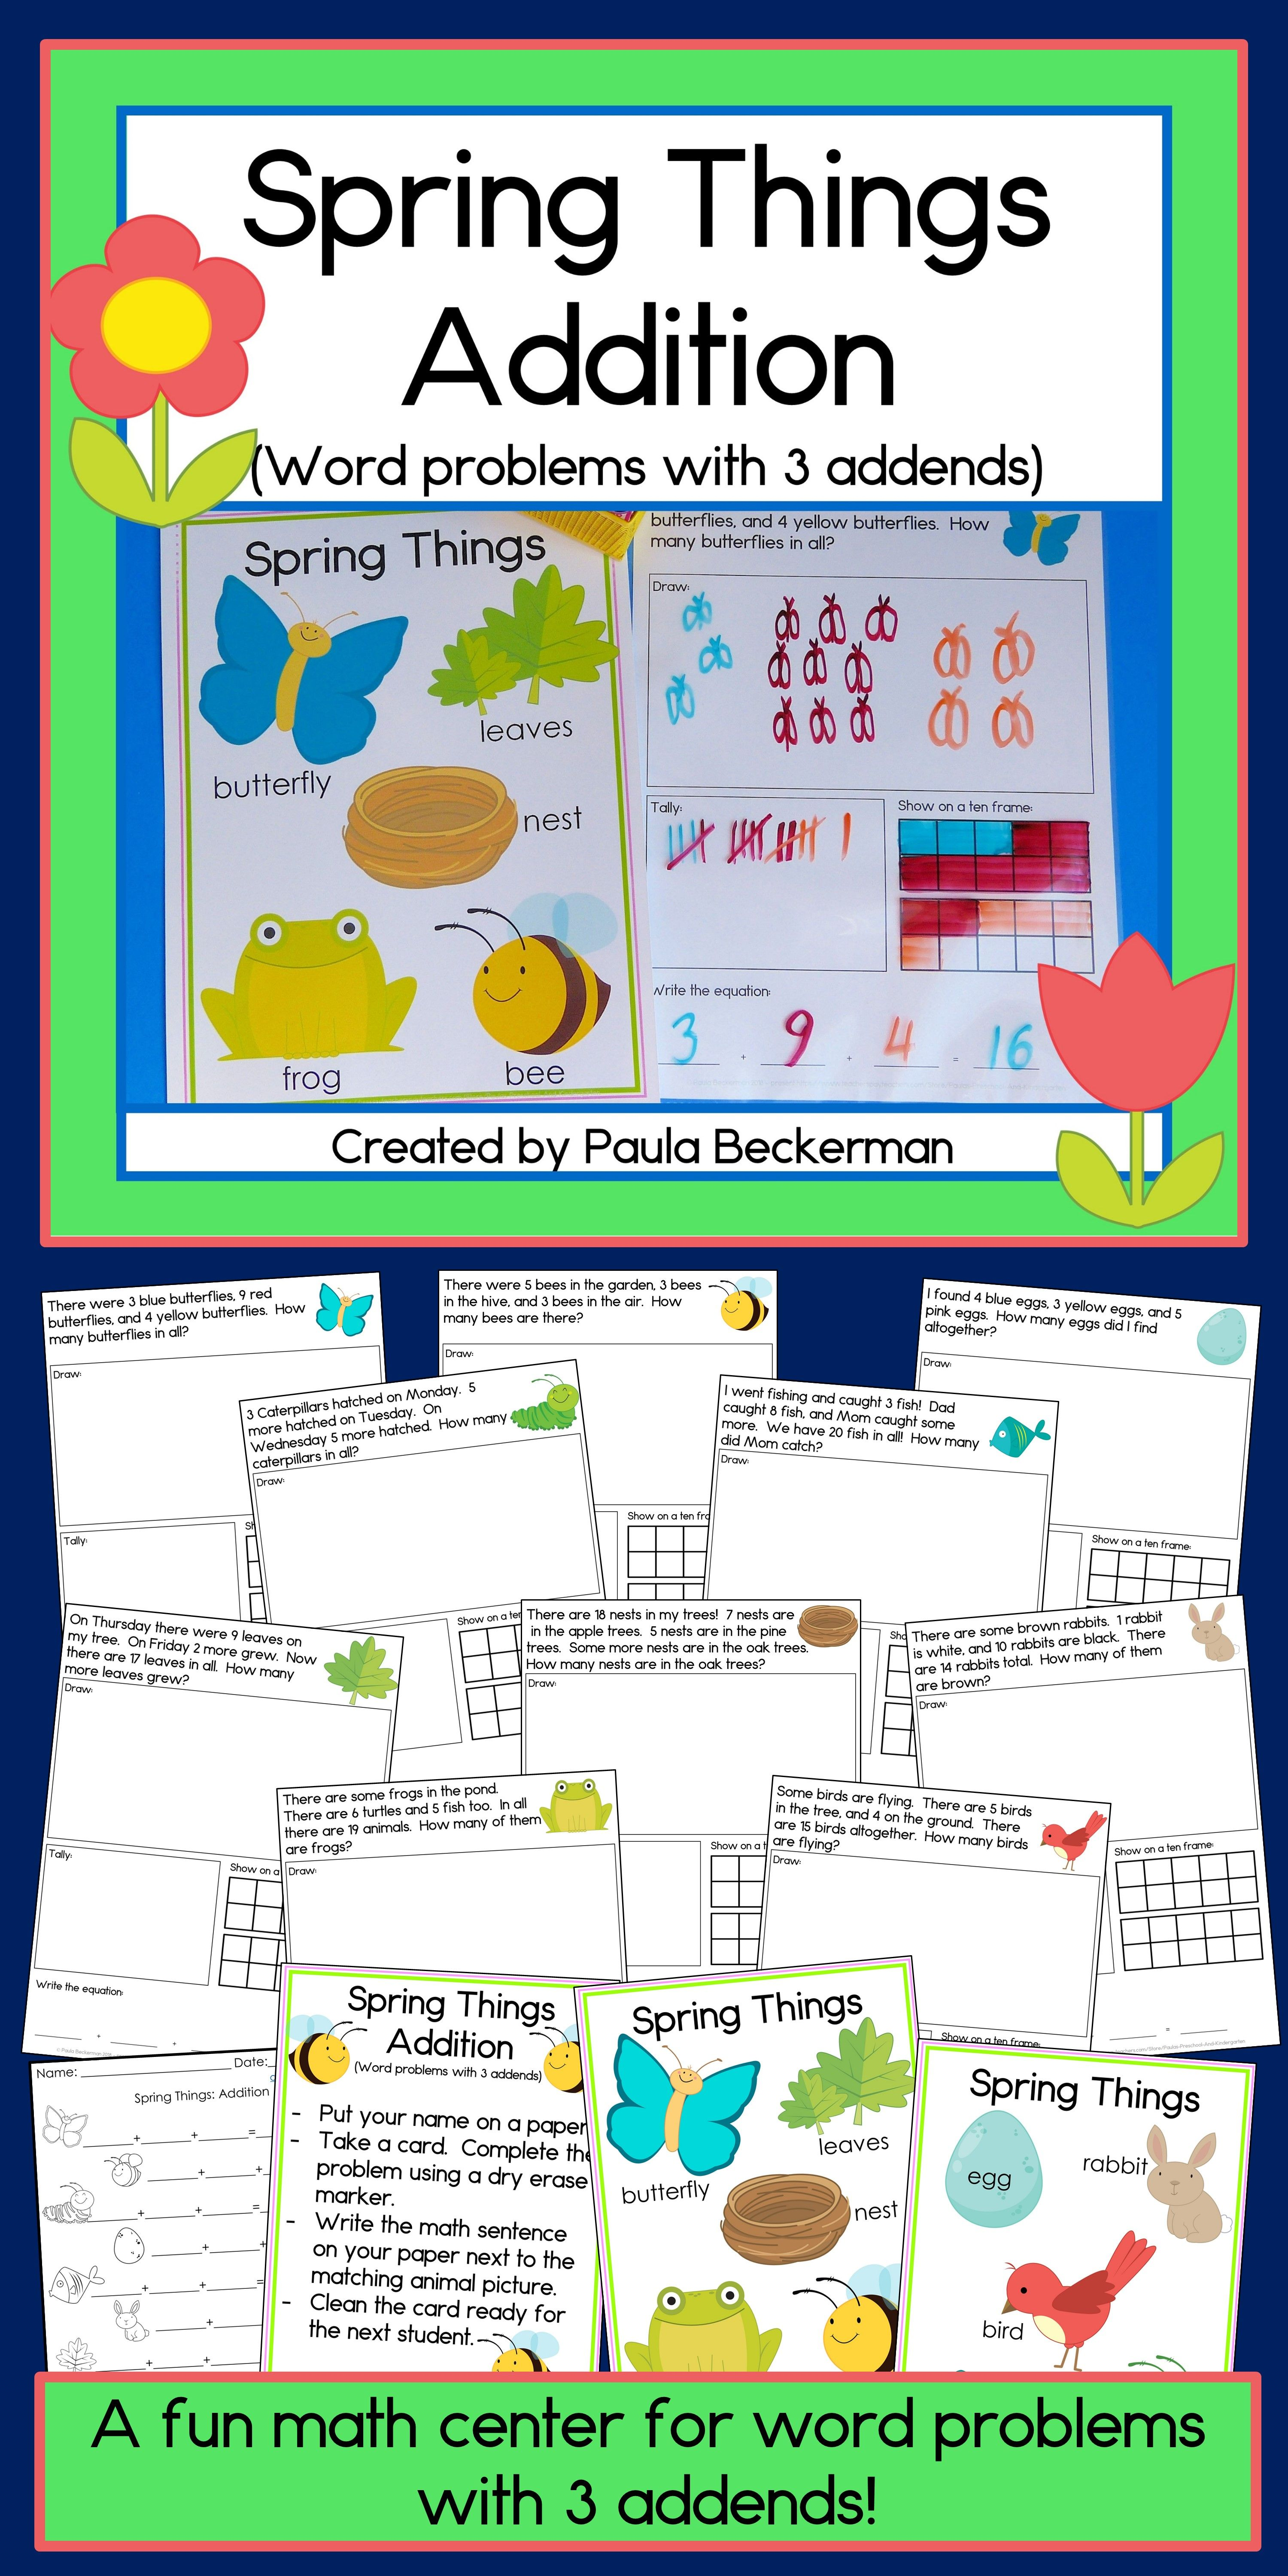 Spring Things Addition Word Problems With 3 Addends